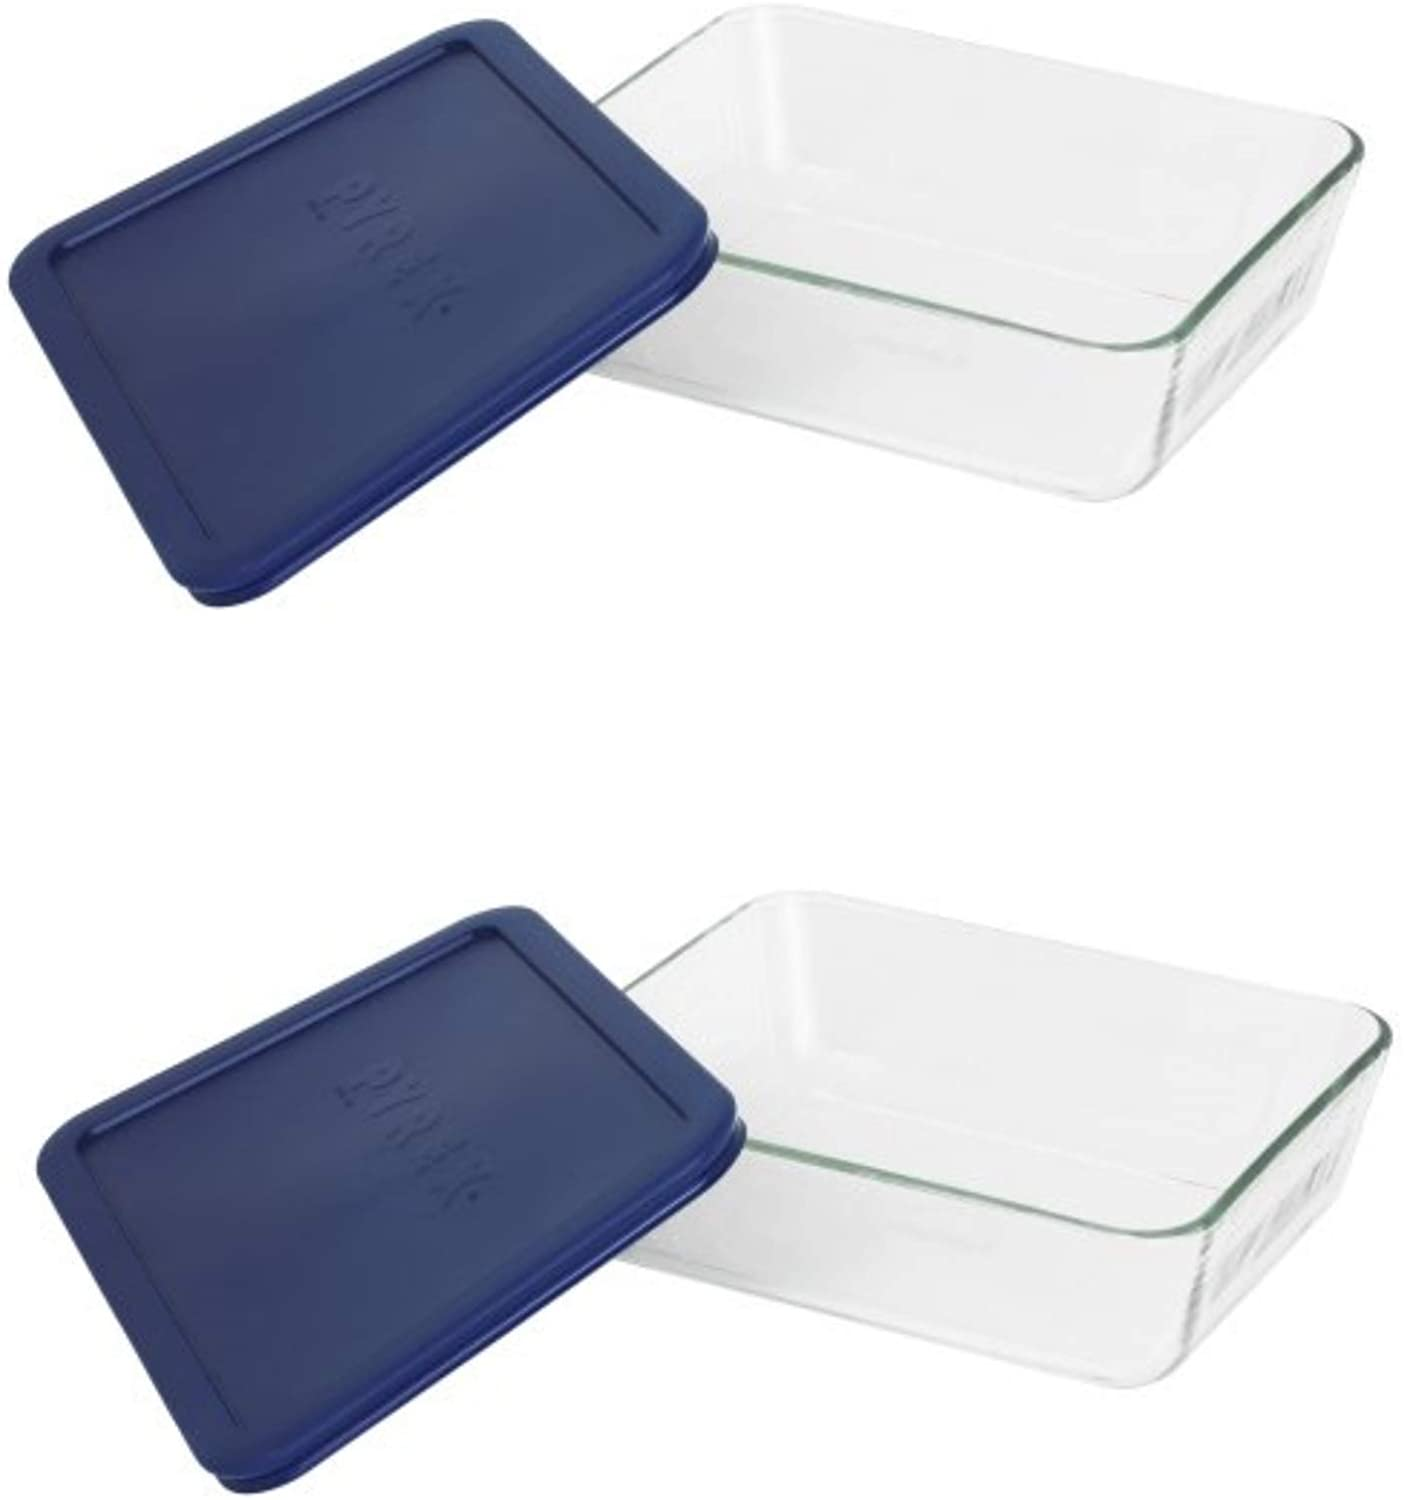 Pyrex Simply Store 6-Cup Rectangular Glass Food Storage Dish,Blue (2 Pack)